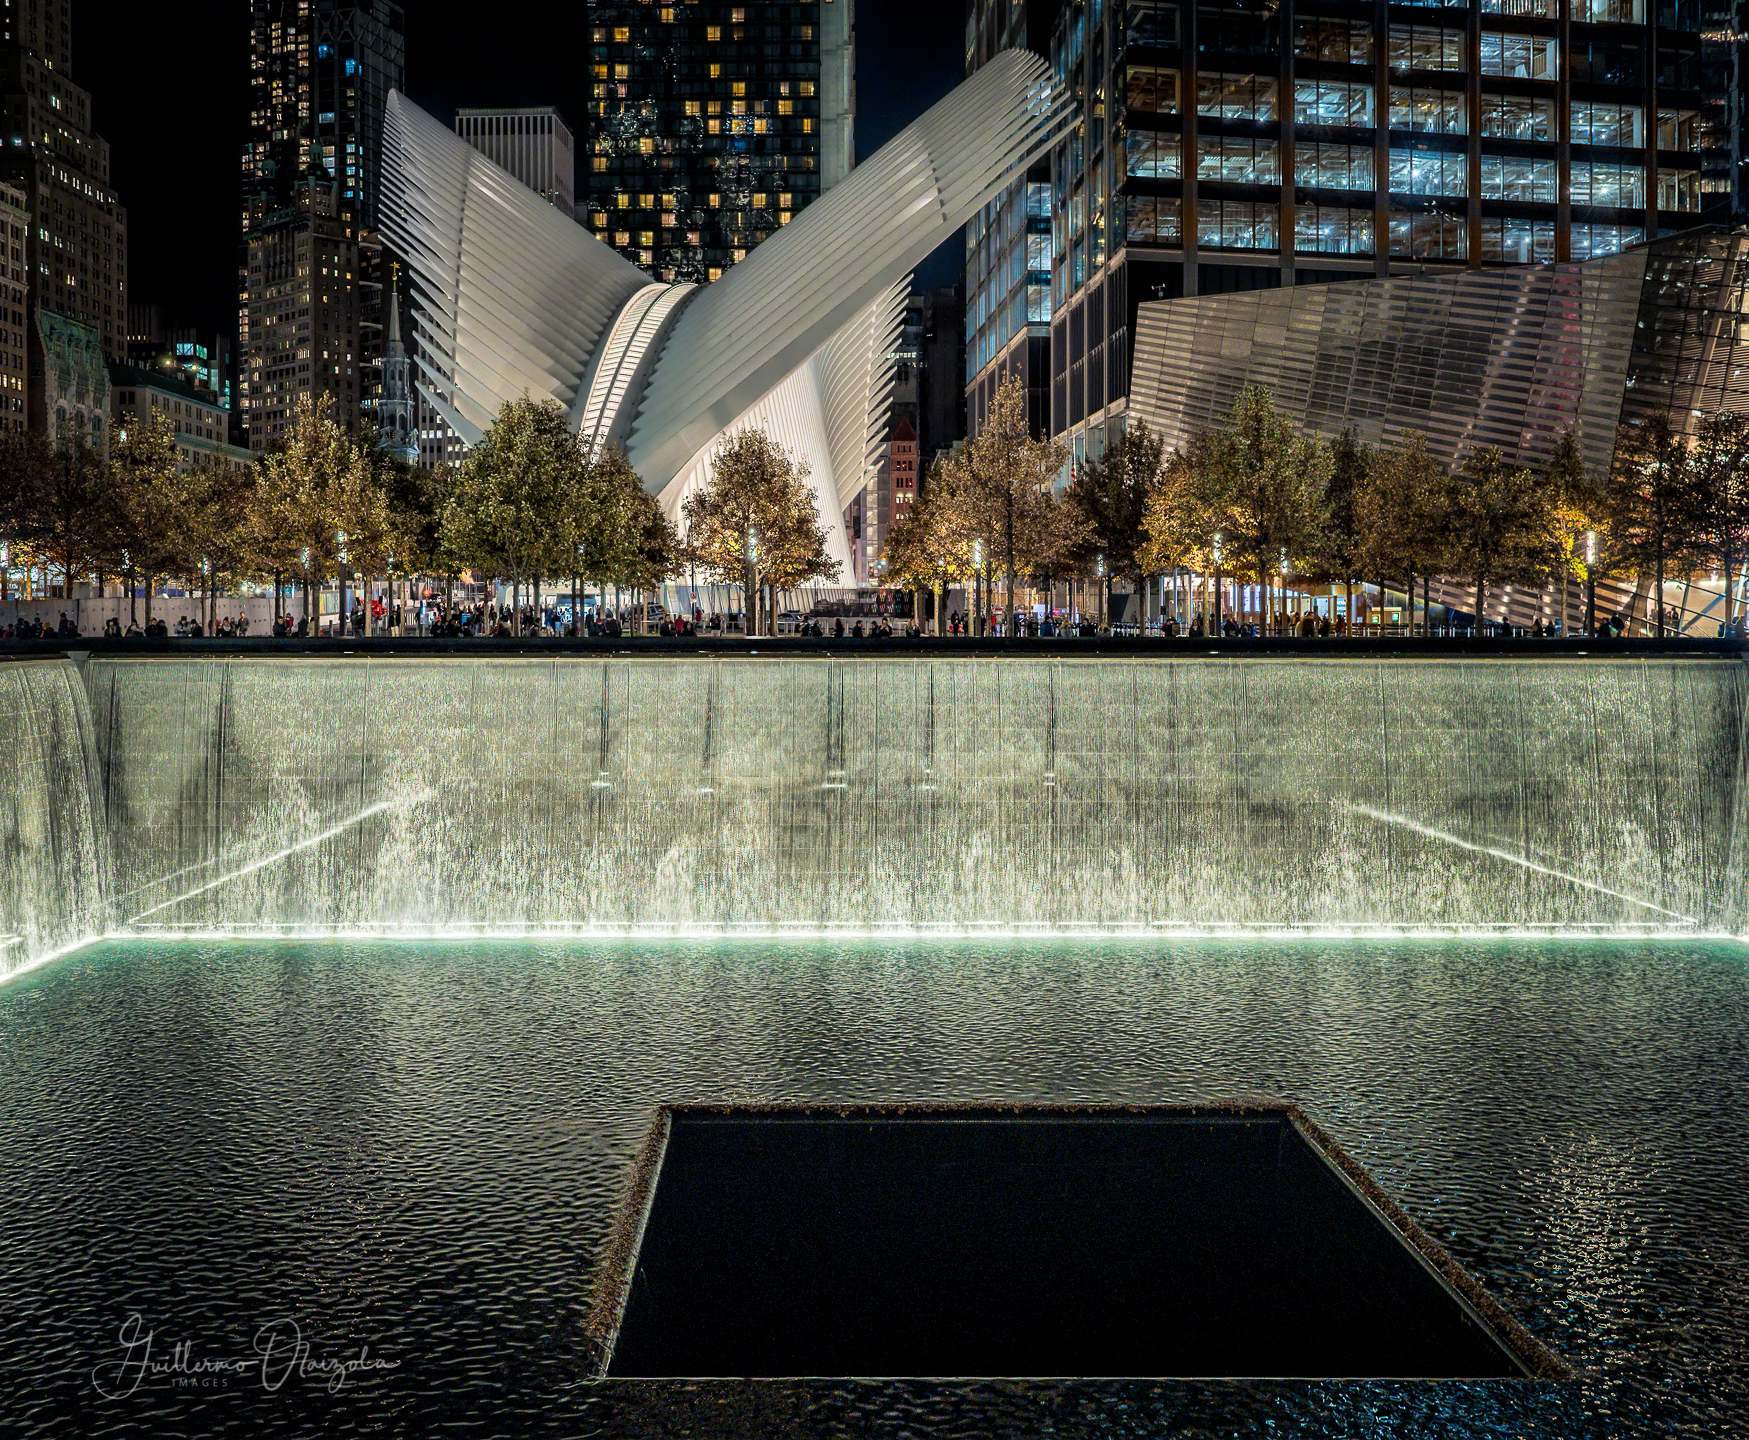 9/11 Memorial and the Oculus - NYC